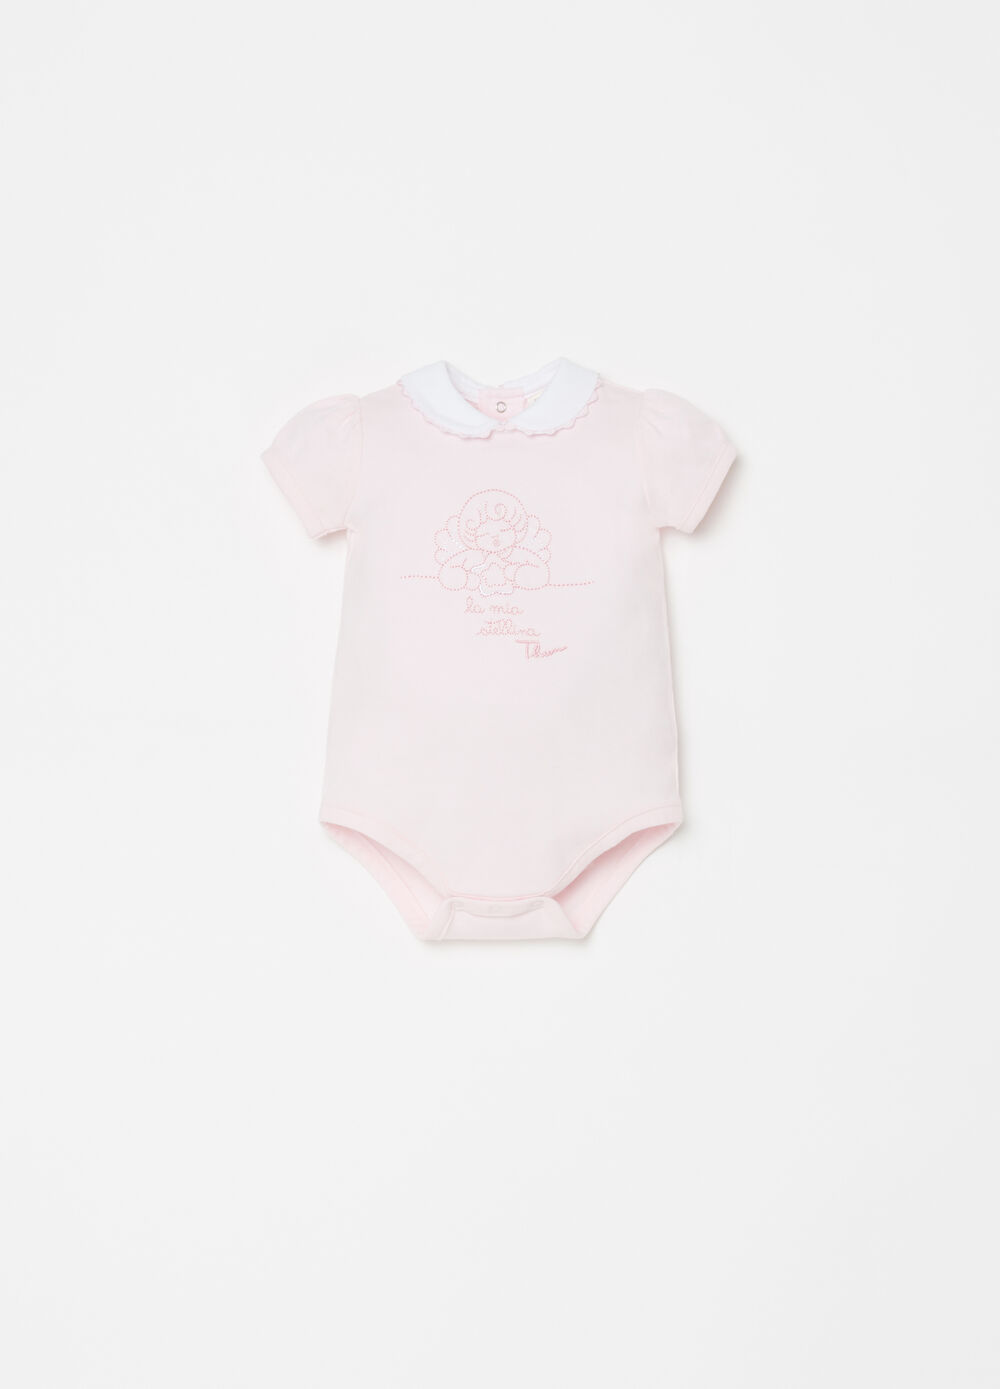 THUN bodysuit in organic cotton with embroidery